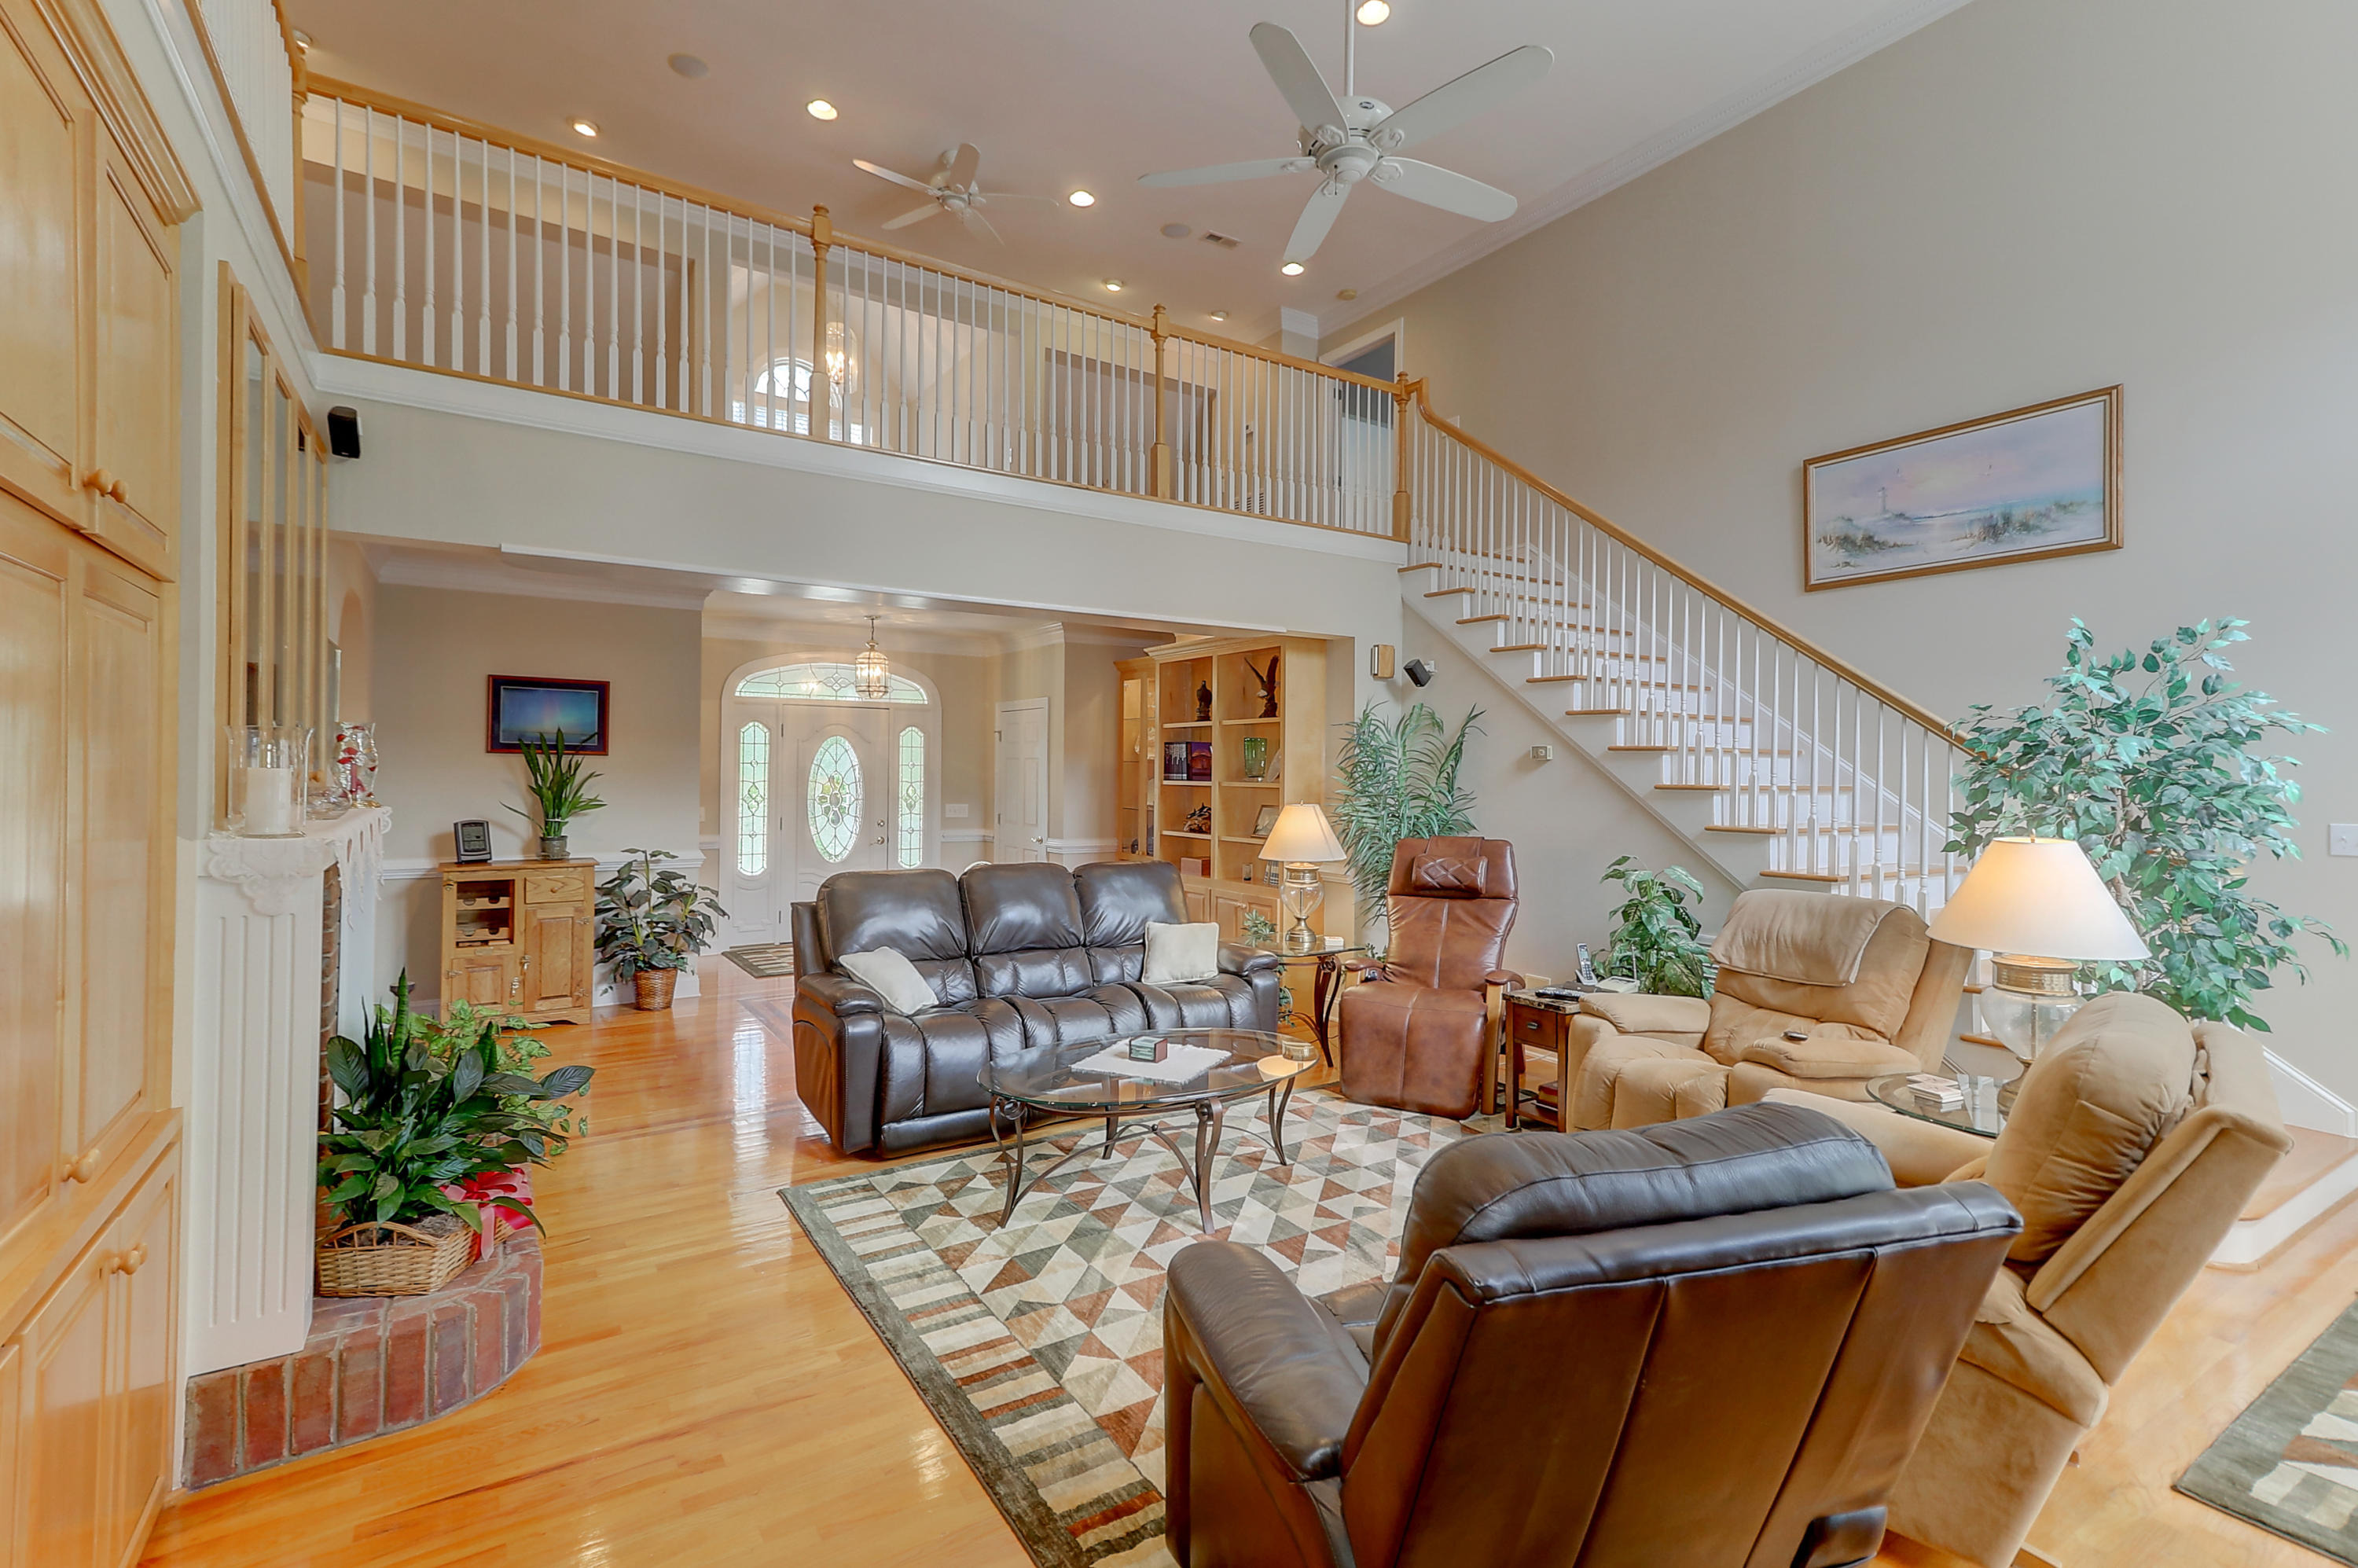 Coosaw Creek Country Club Homes For Sale - 8700 Fairway Woods, North Charleston, SC - 8